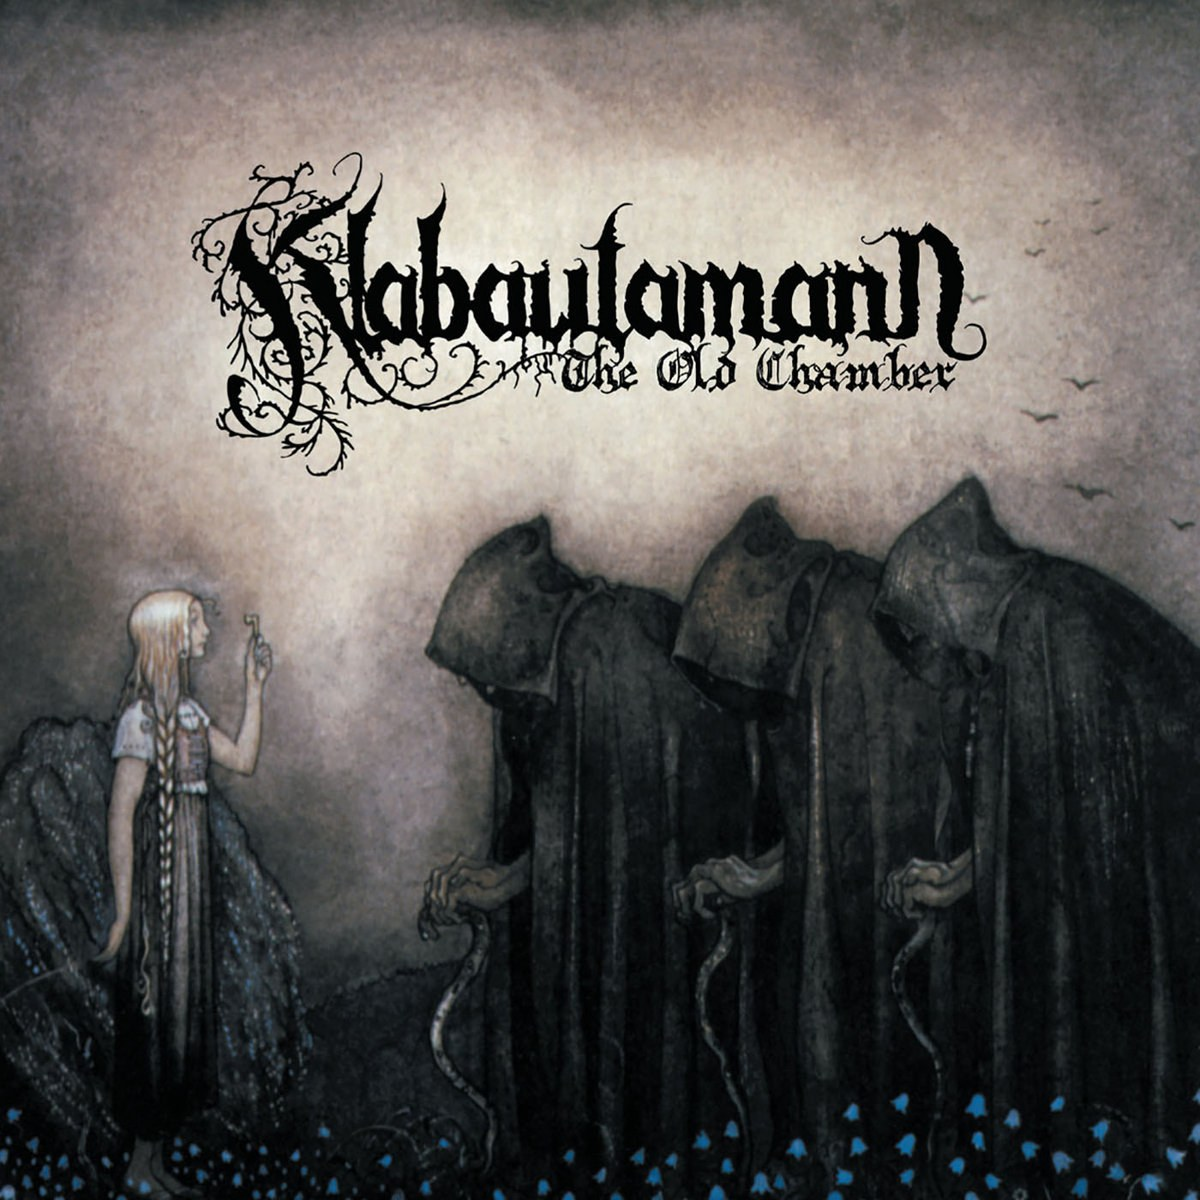 Review for Klabautamann - The Old Chamber